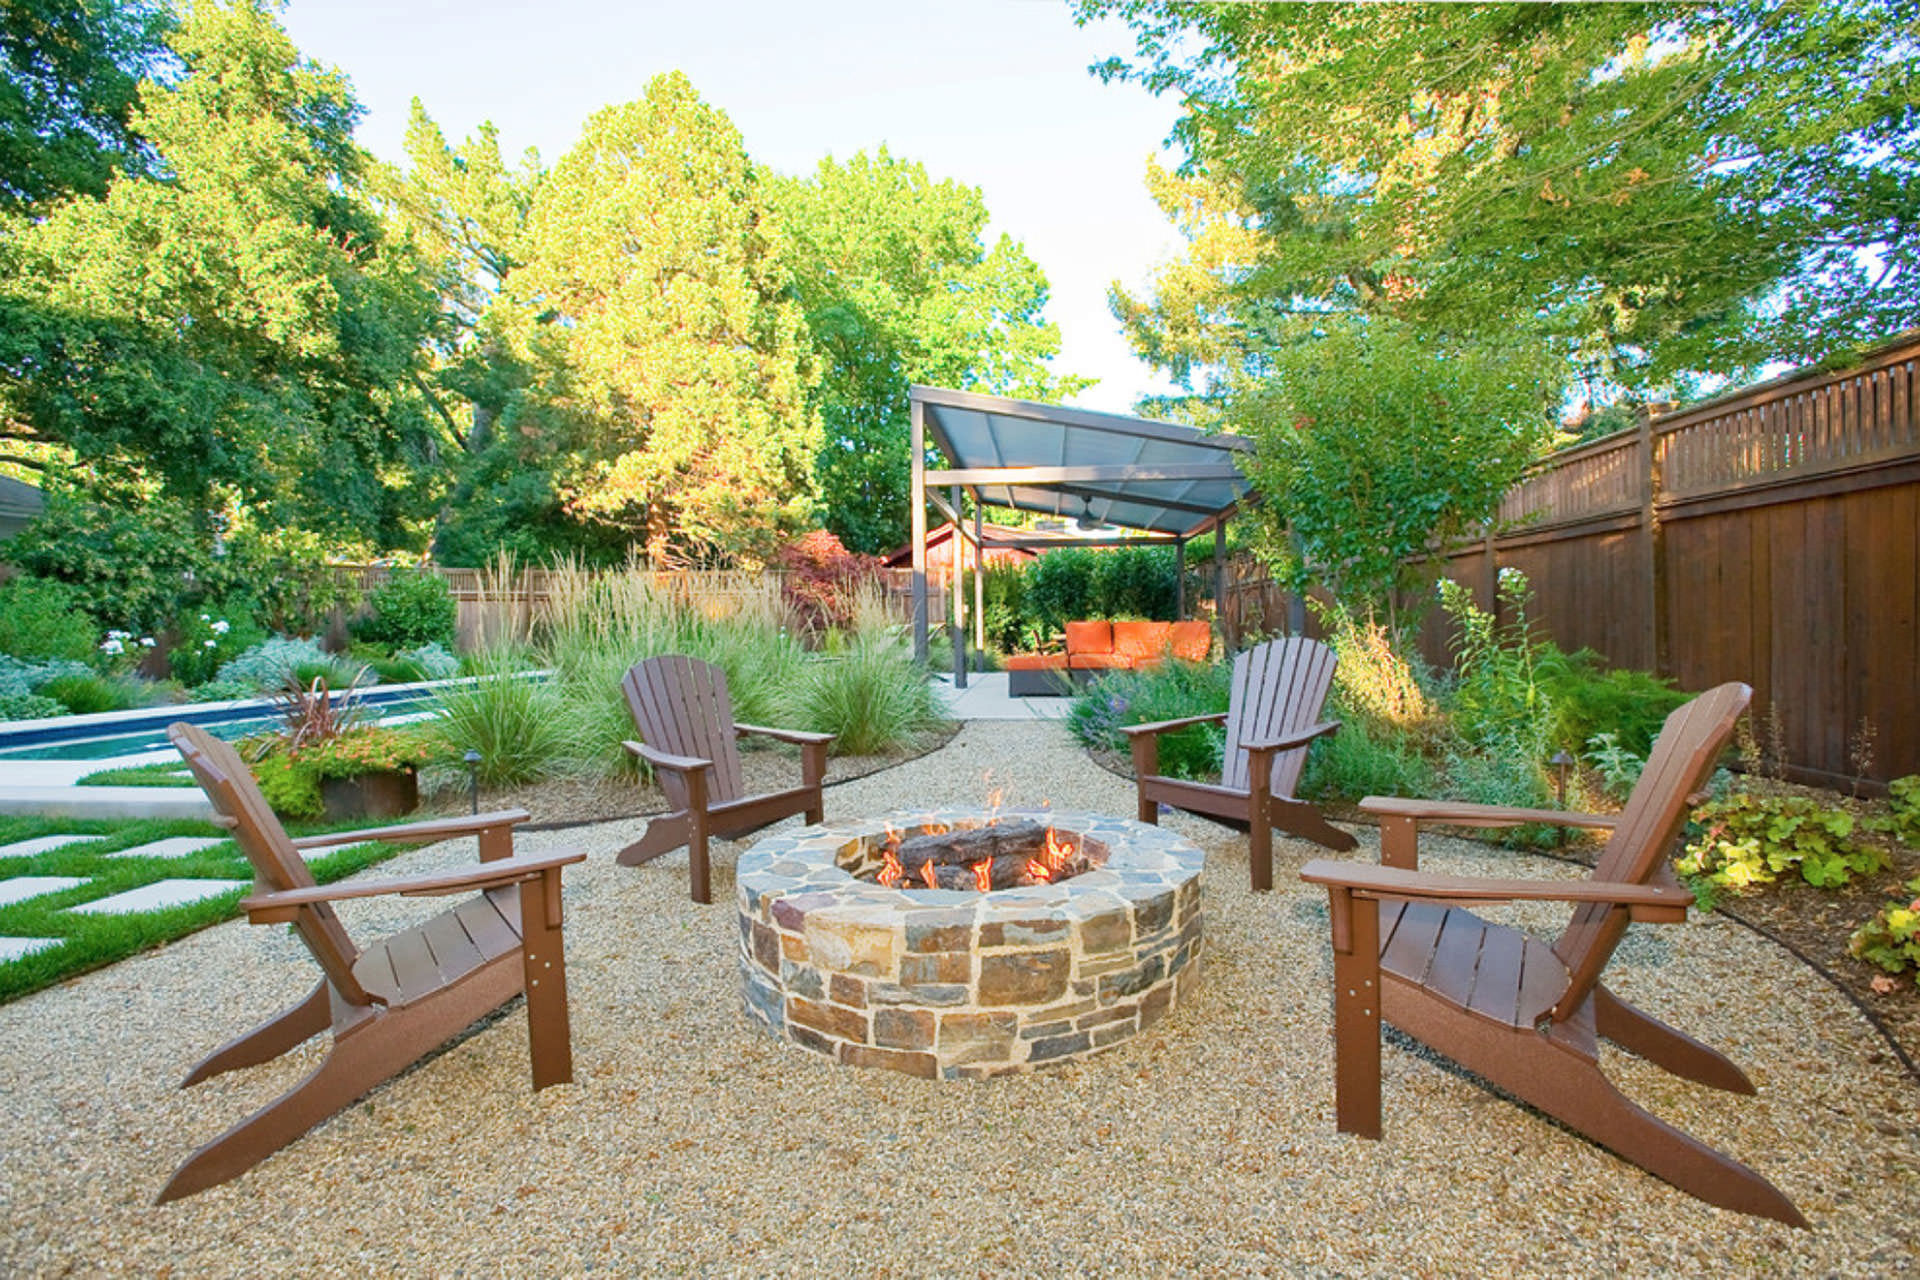 Outdoor patio ideas on pinterest pea gravel patio pea for Back patio design ideas